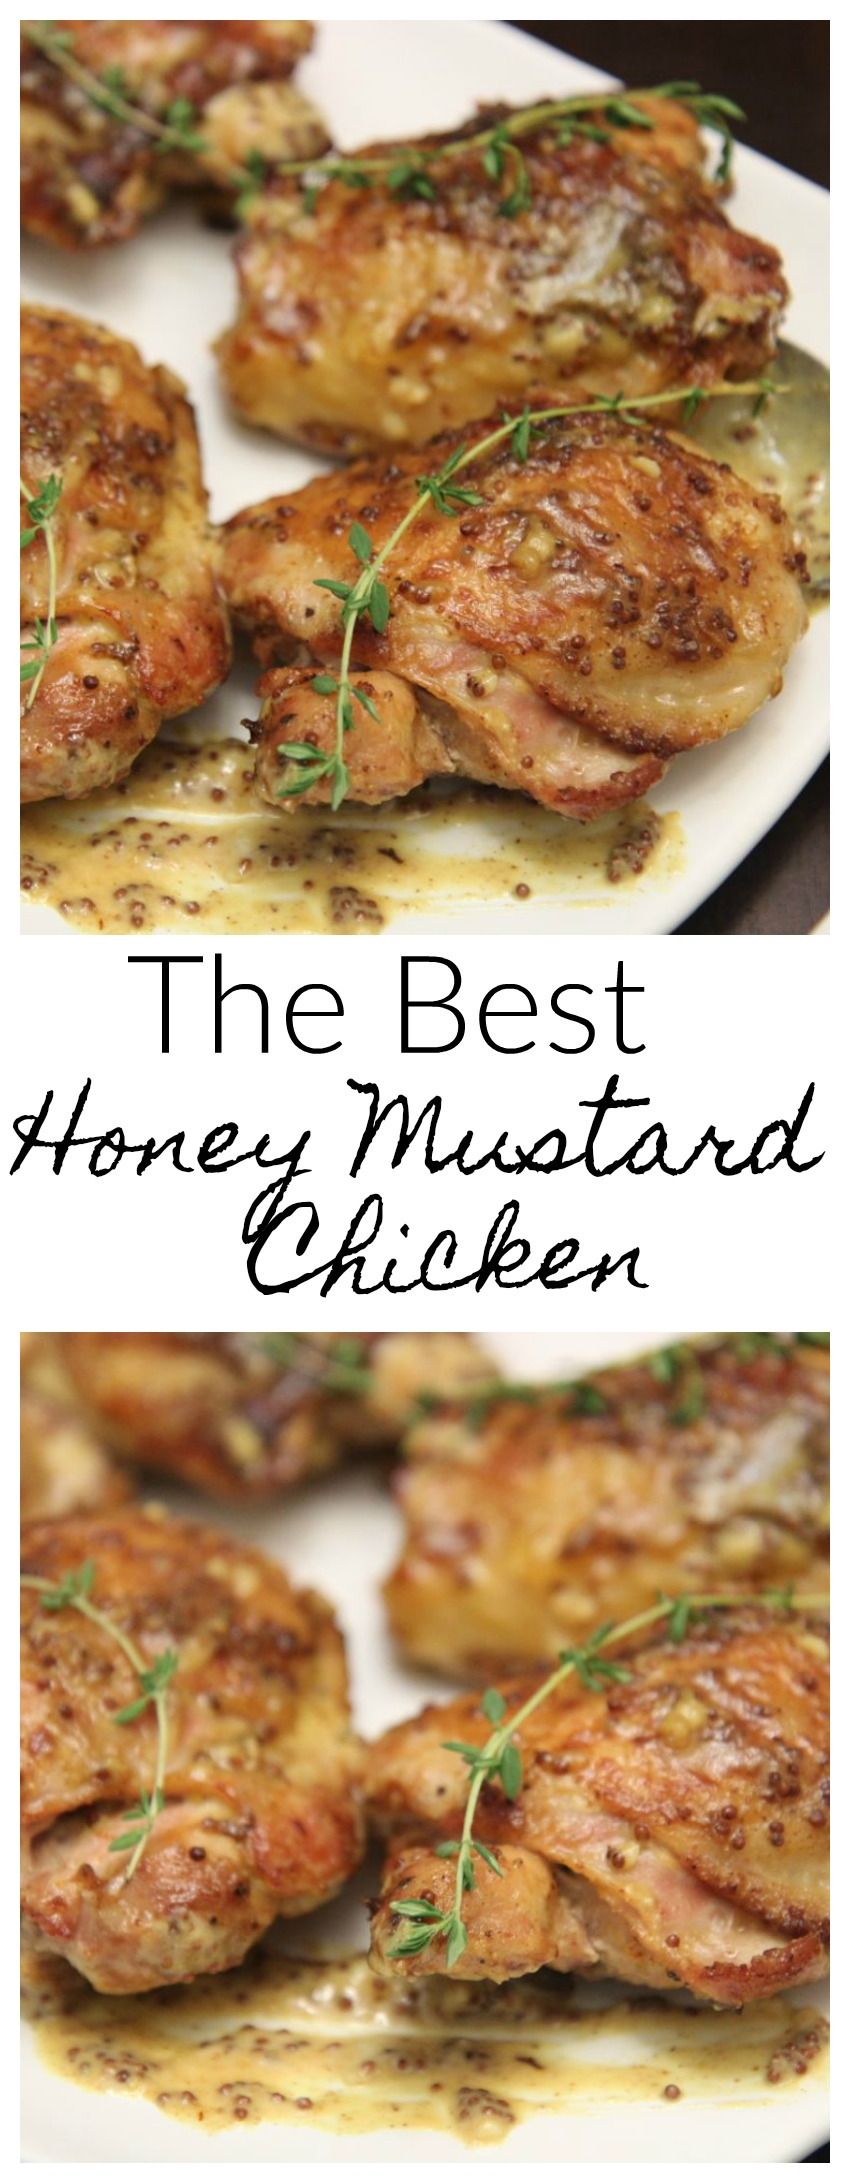 The Best Honey Mustard Chicken Recipe by Cooked By Julie